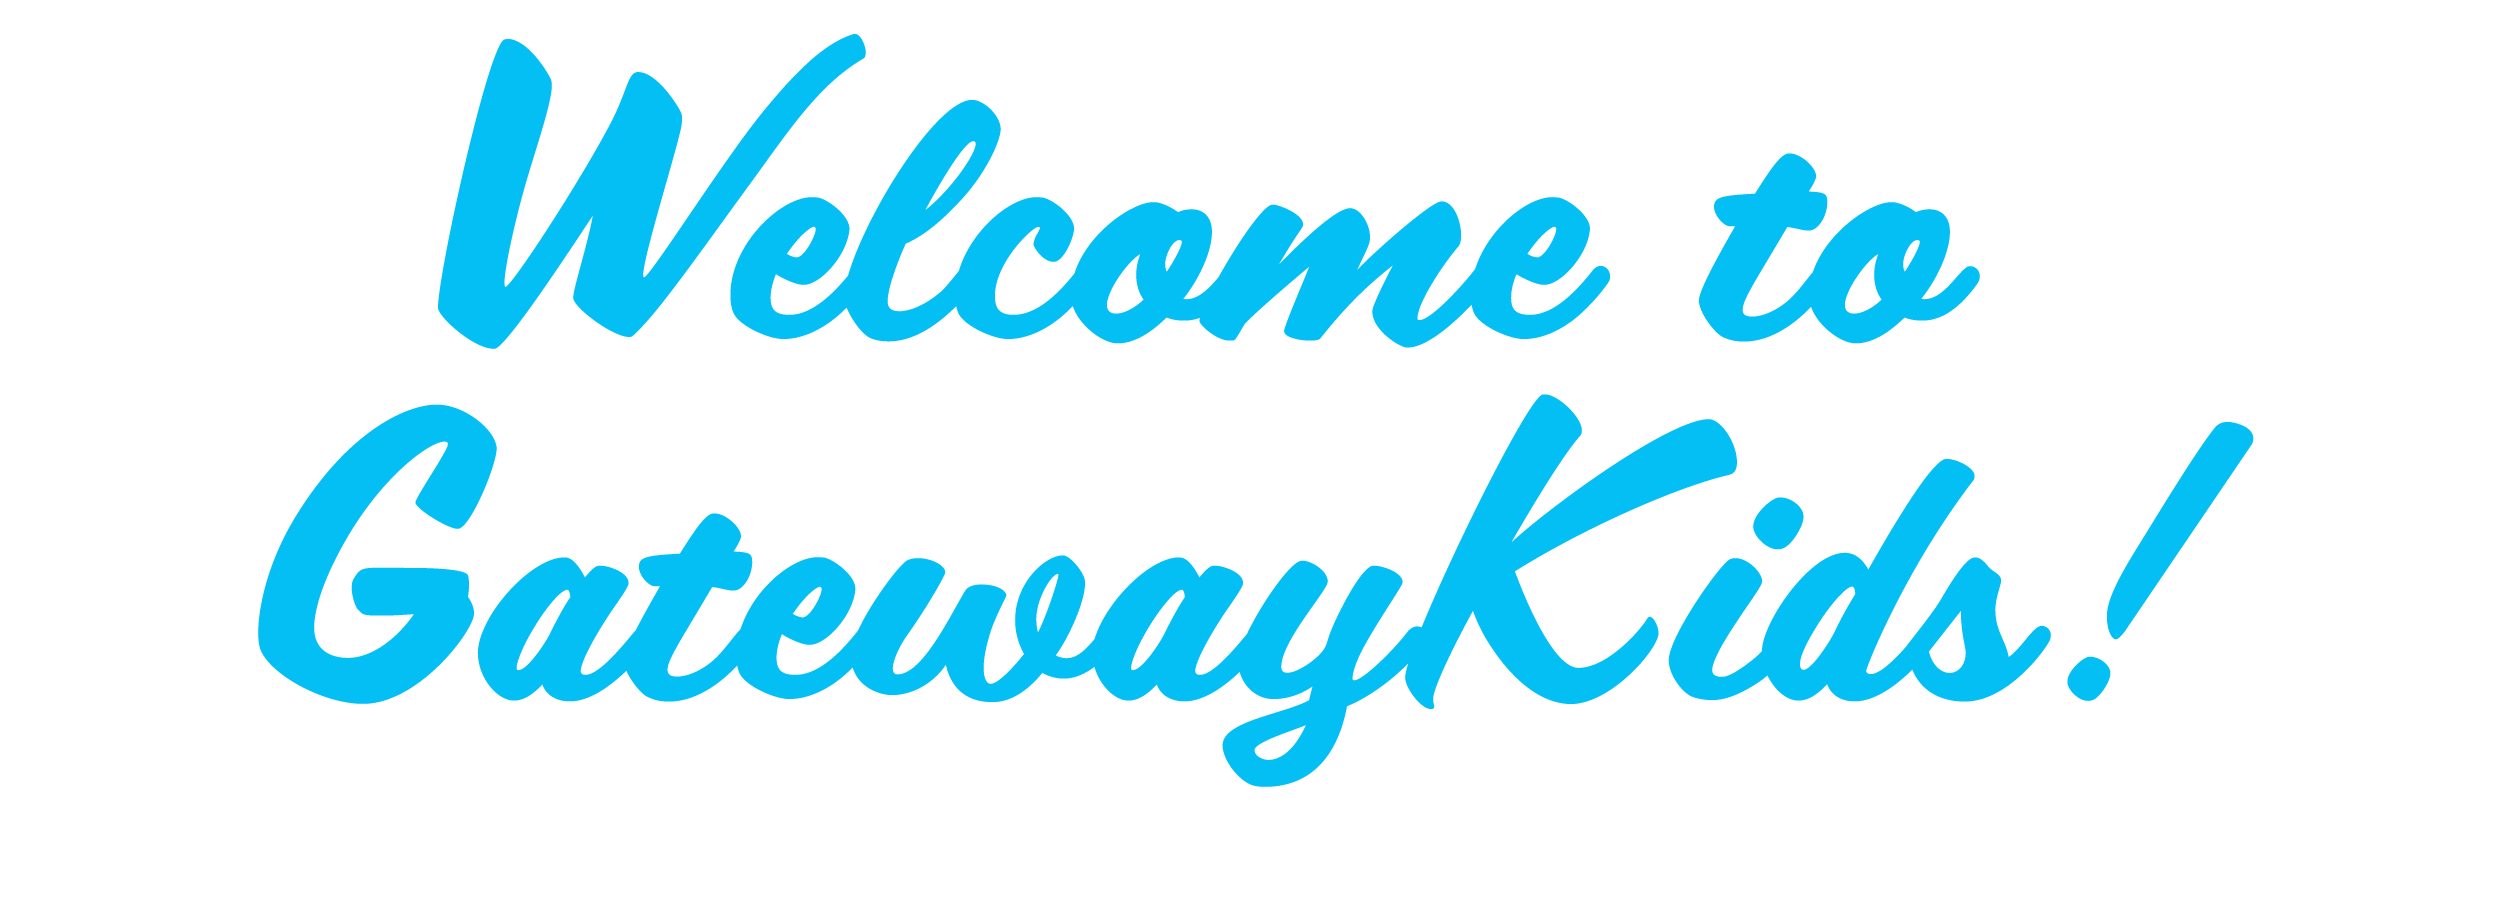 welcome-to-gk.png